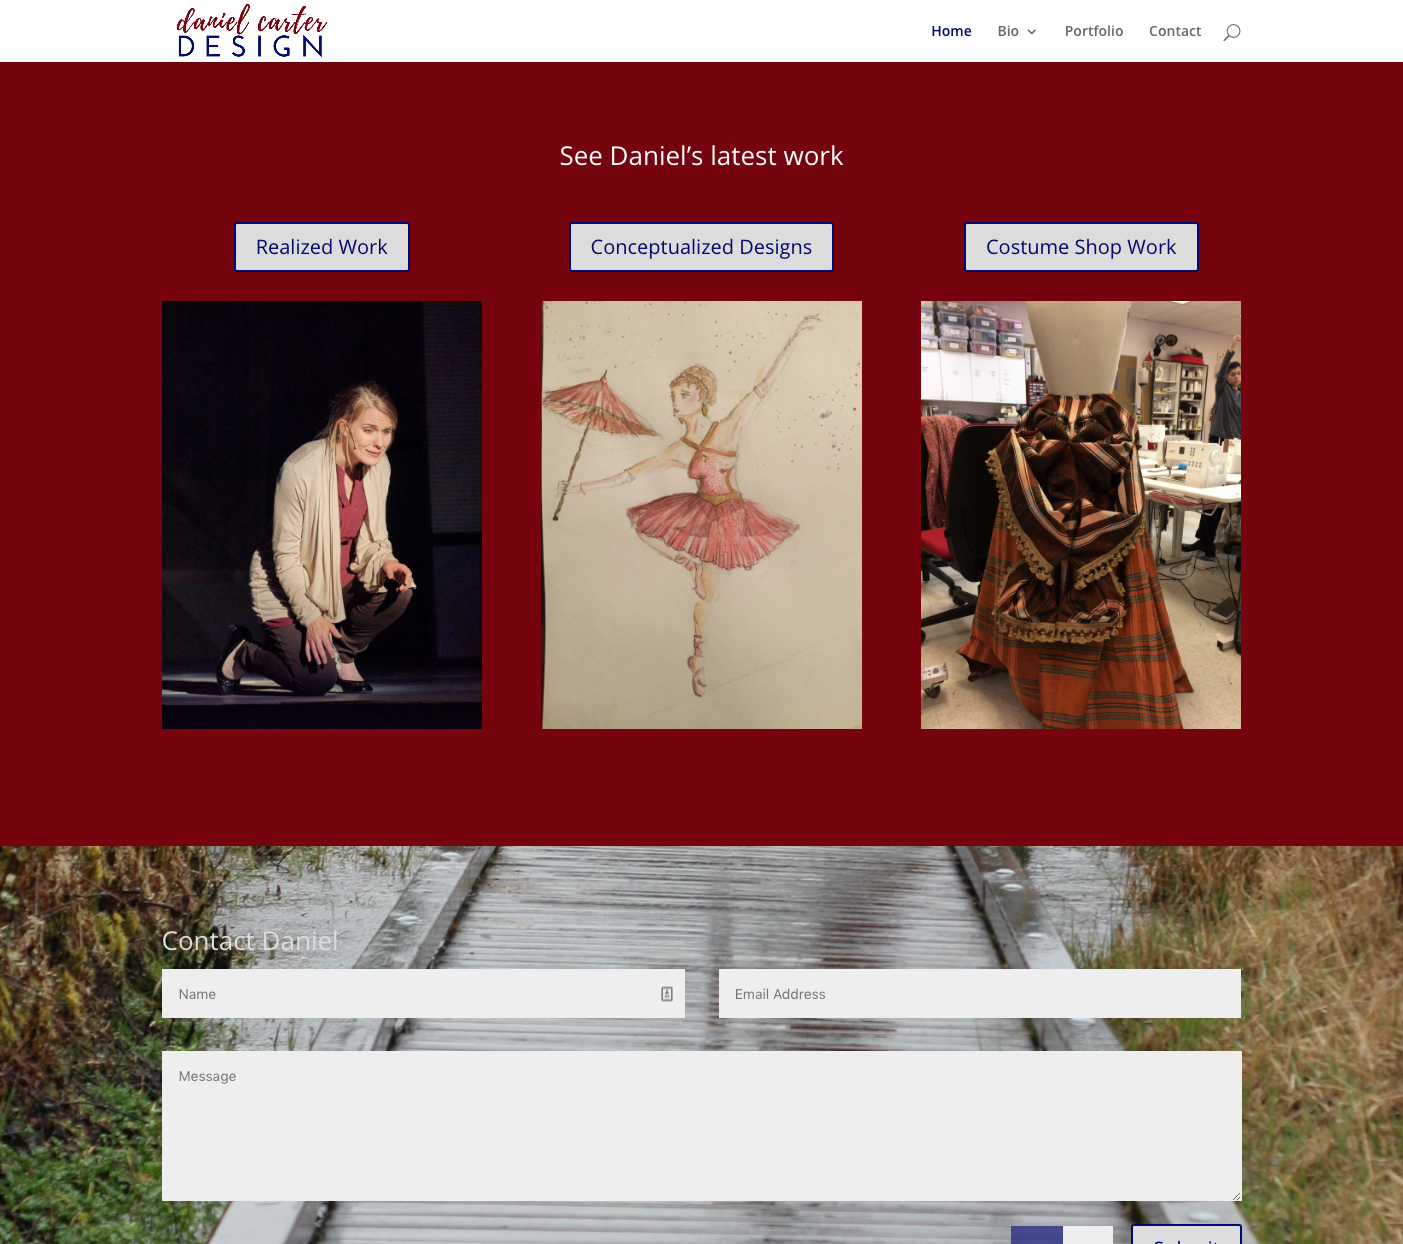 Daniel Carter Design Website